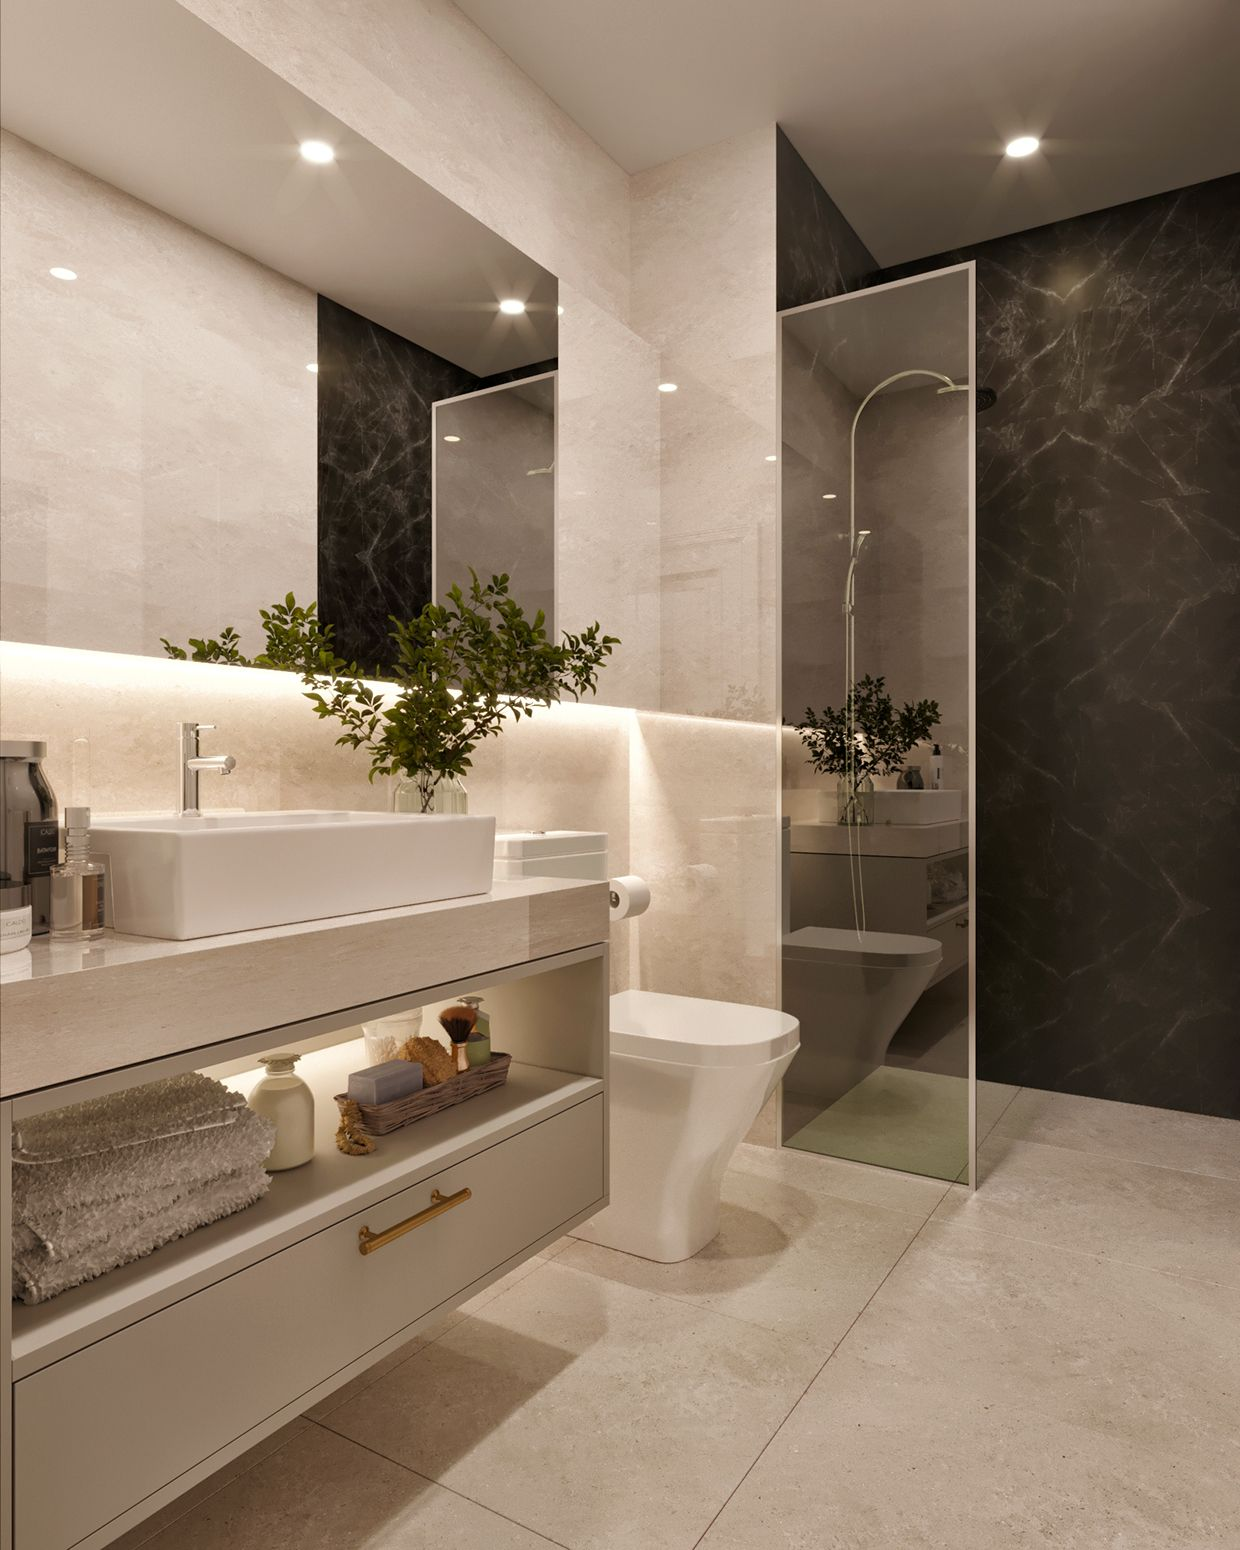 Pin By Michelle Bloyd On Bathroom Designs In 2019